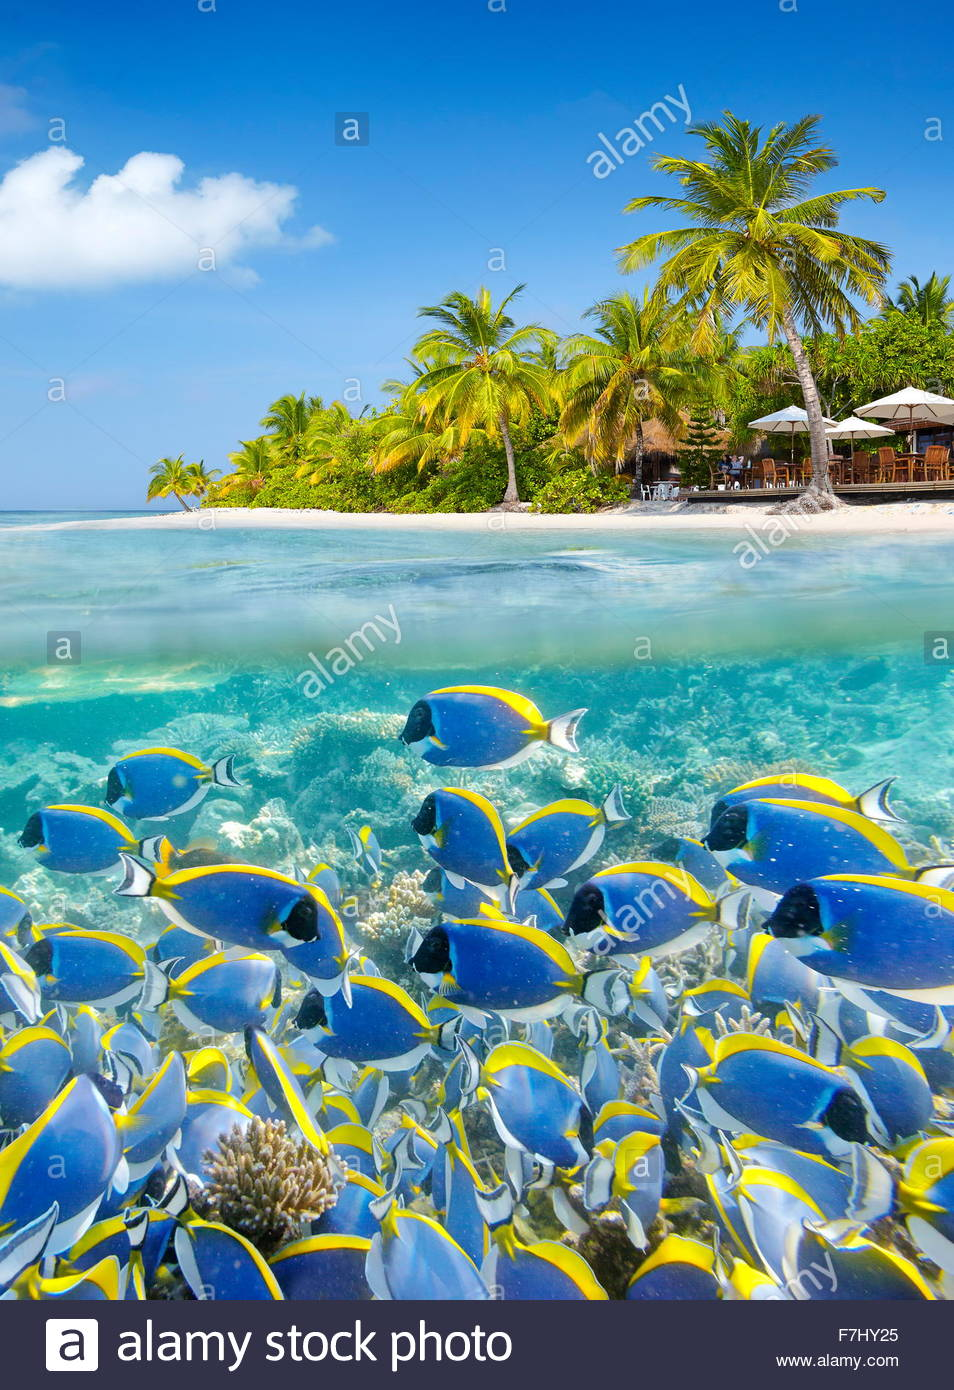 Tropical landscape at Maldives Island, Ari Atoll - Stock Image